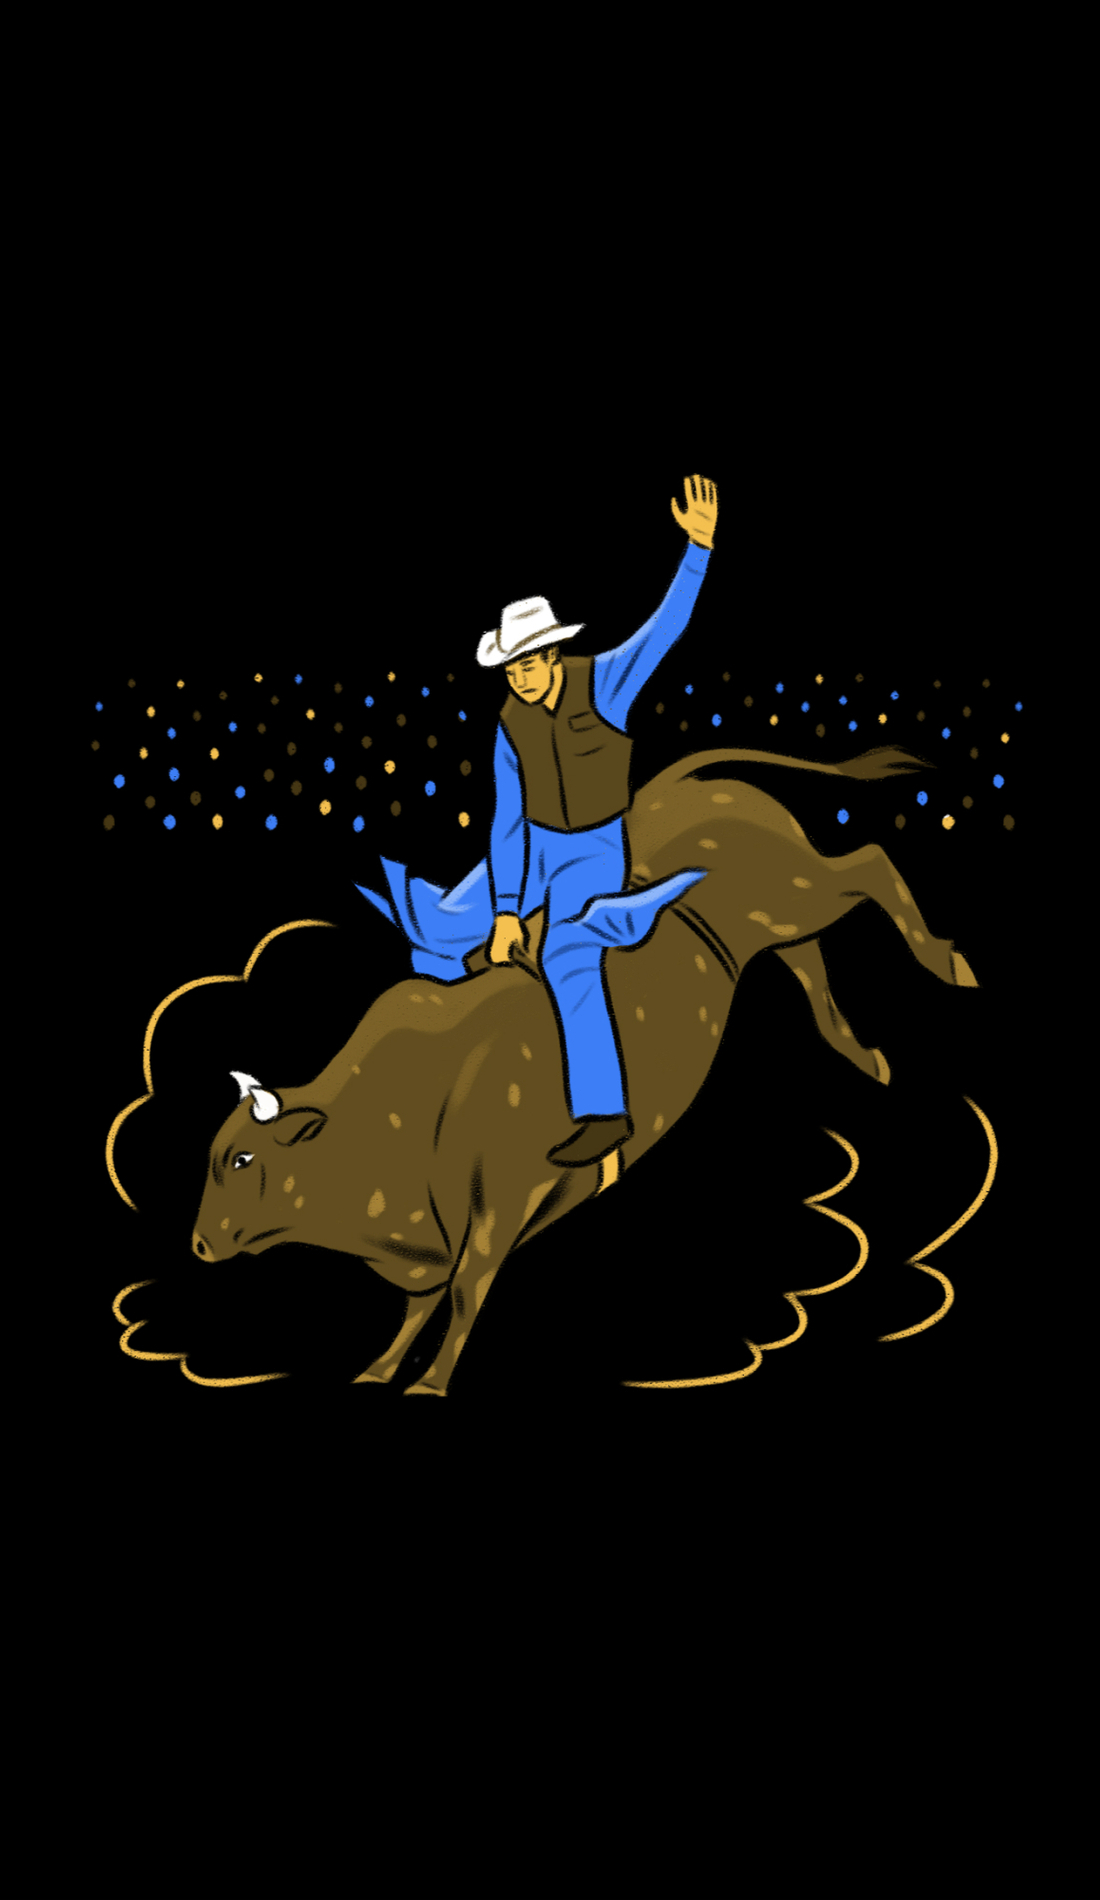 A Lakeland Pro Rodeo Classic live event